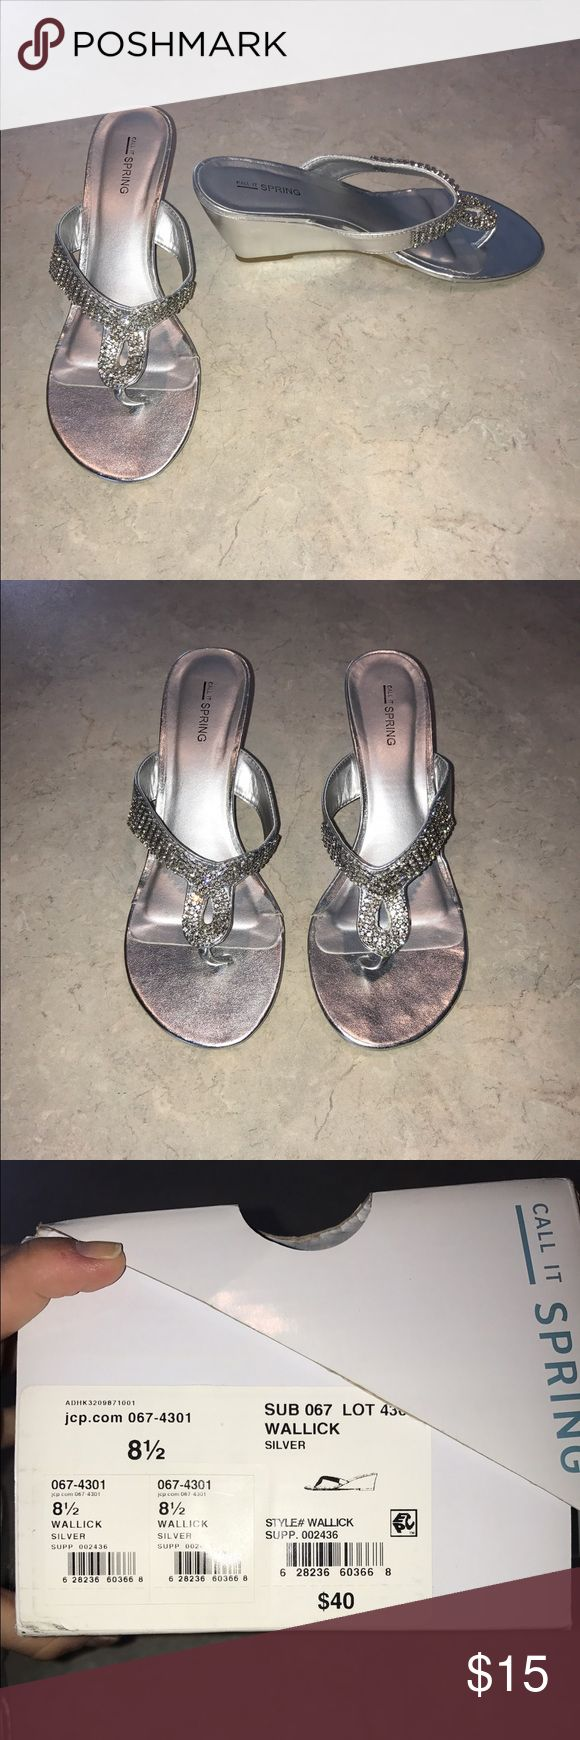 Silver metallic wedge sandal Condition: like new; worn once to a wedding Call It Spring Shoes Wedges